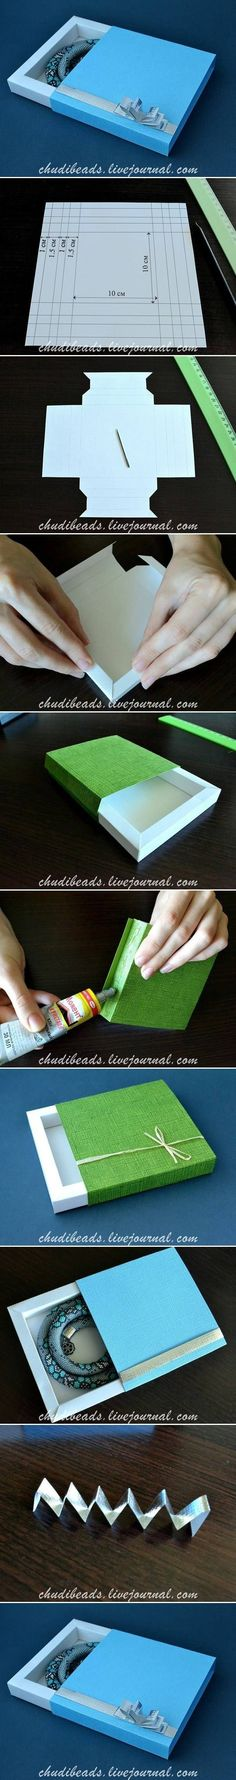 DIY Square Gift Box DIY Square Gift Box